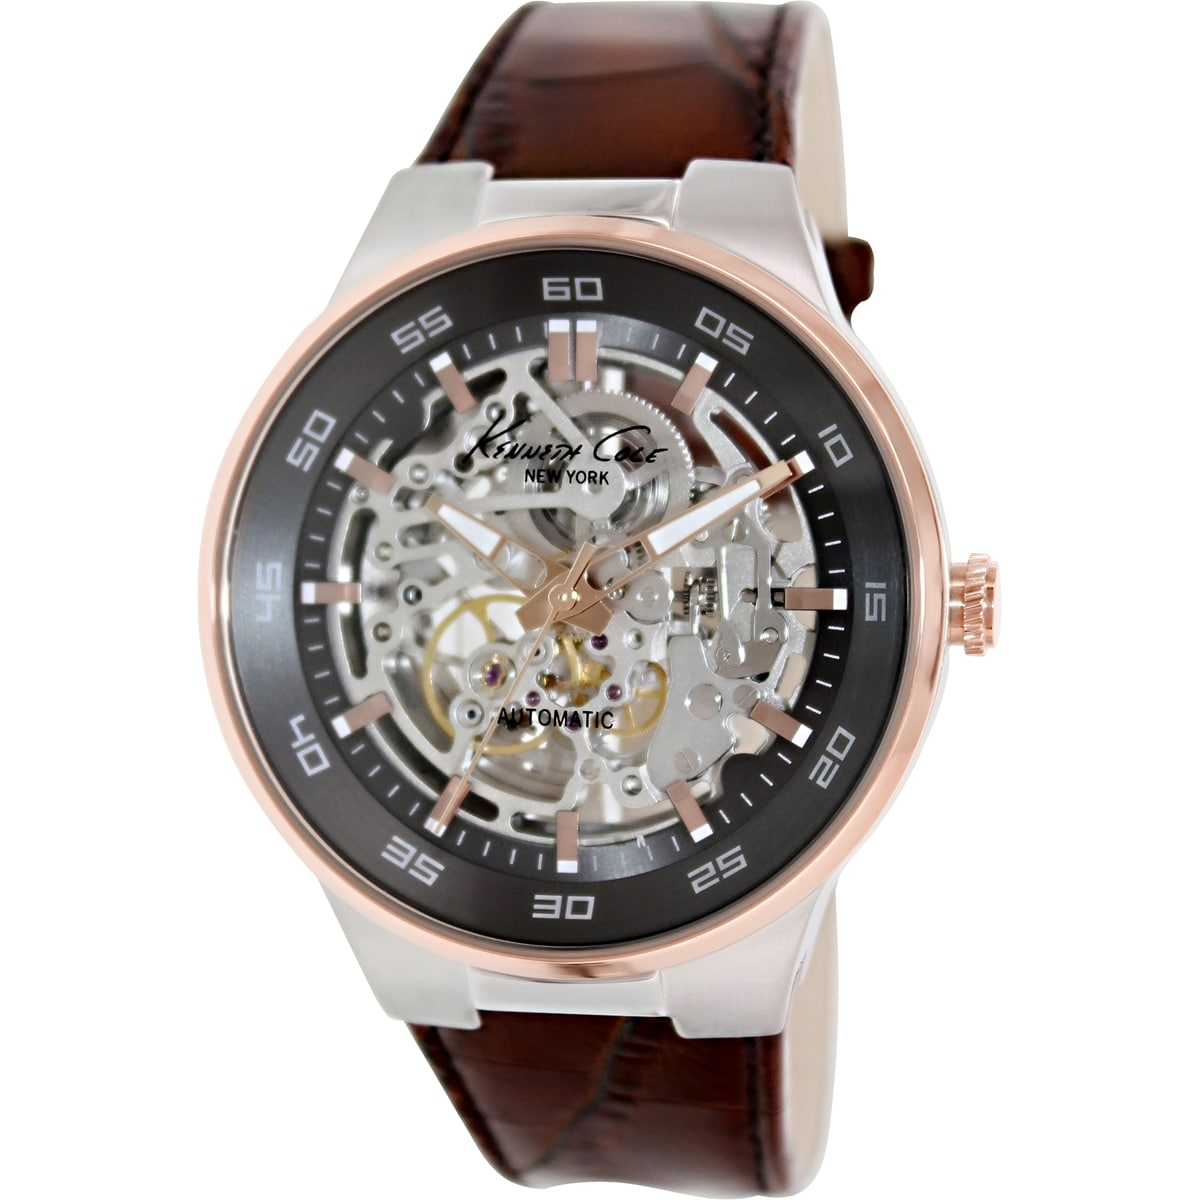 Kenneth Cole Men's KC8047 Brown Leather Automatic Watch with Grey Dial